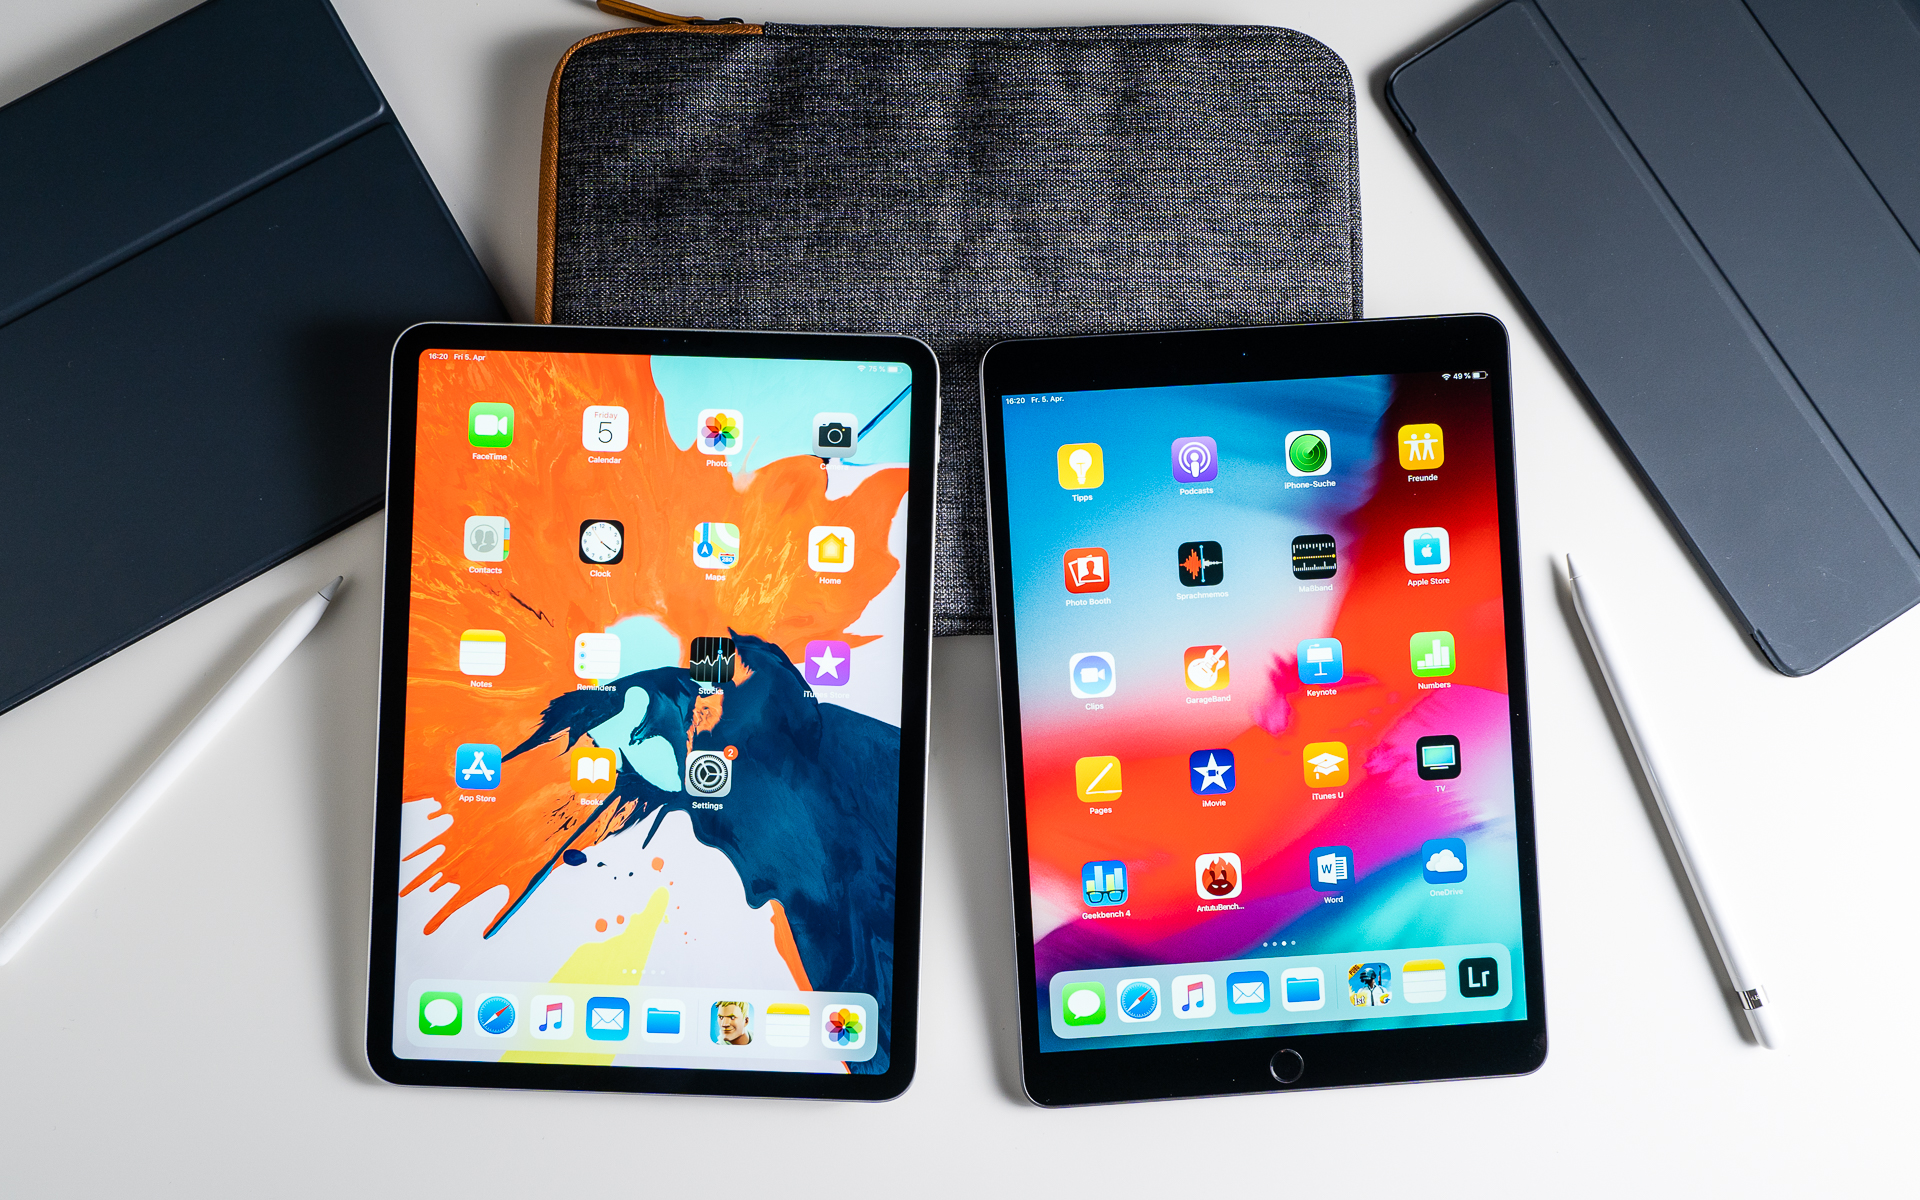 iPad Air vs iPad Pro comparison